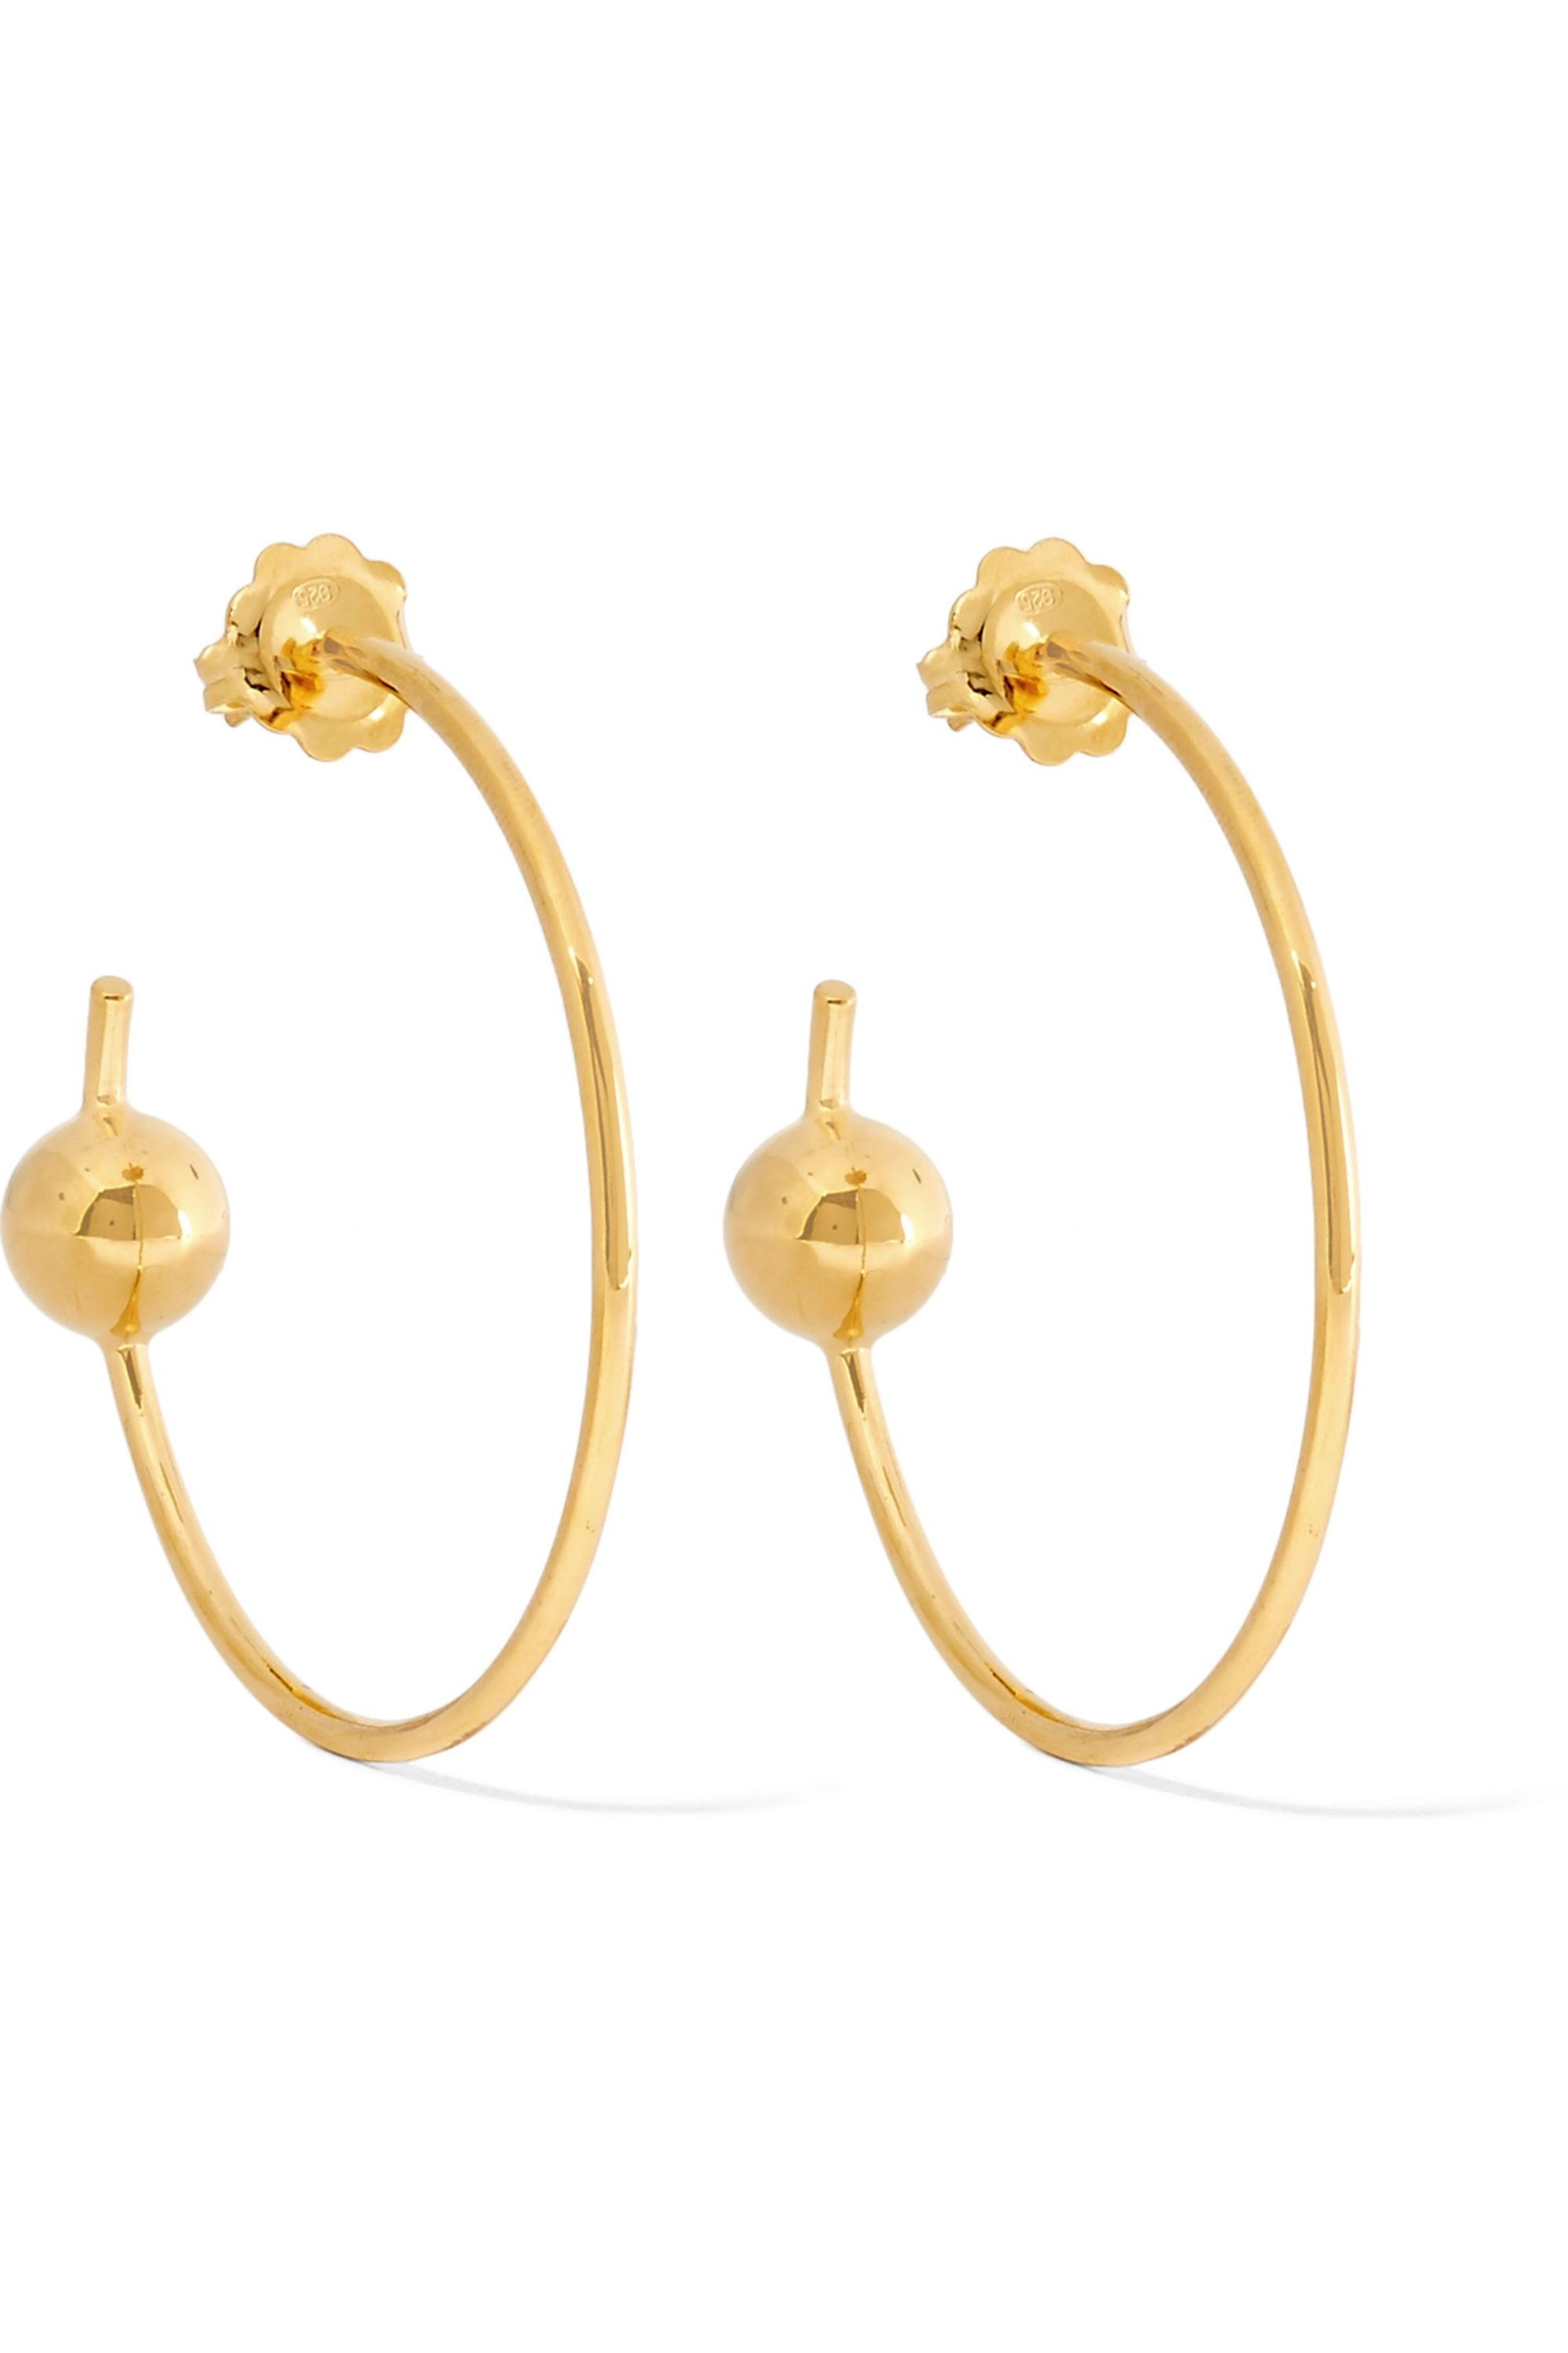 Maria Black Orion Maxi gold-plated hoop earrings